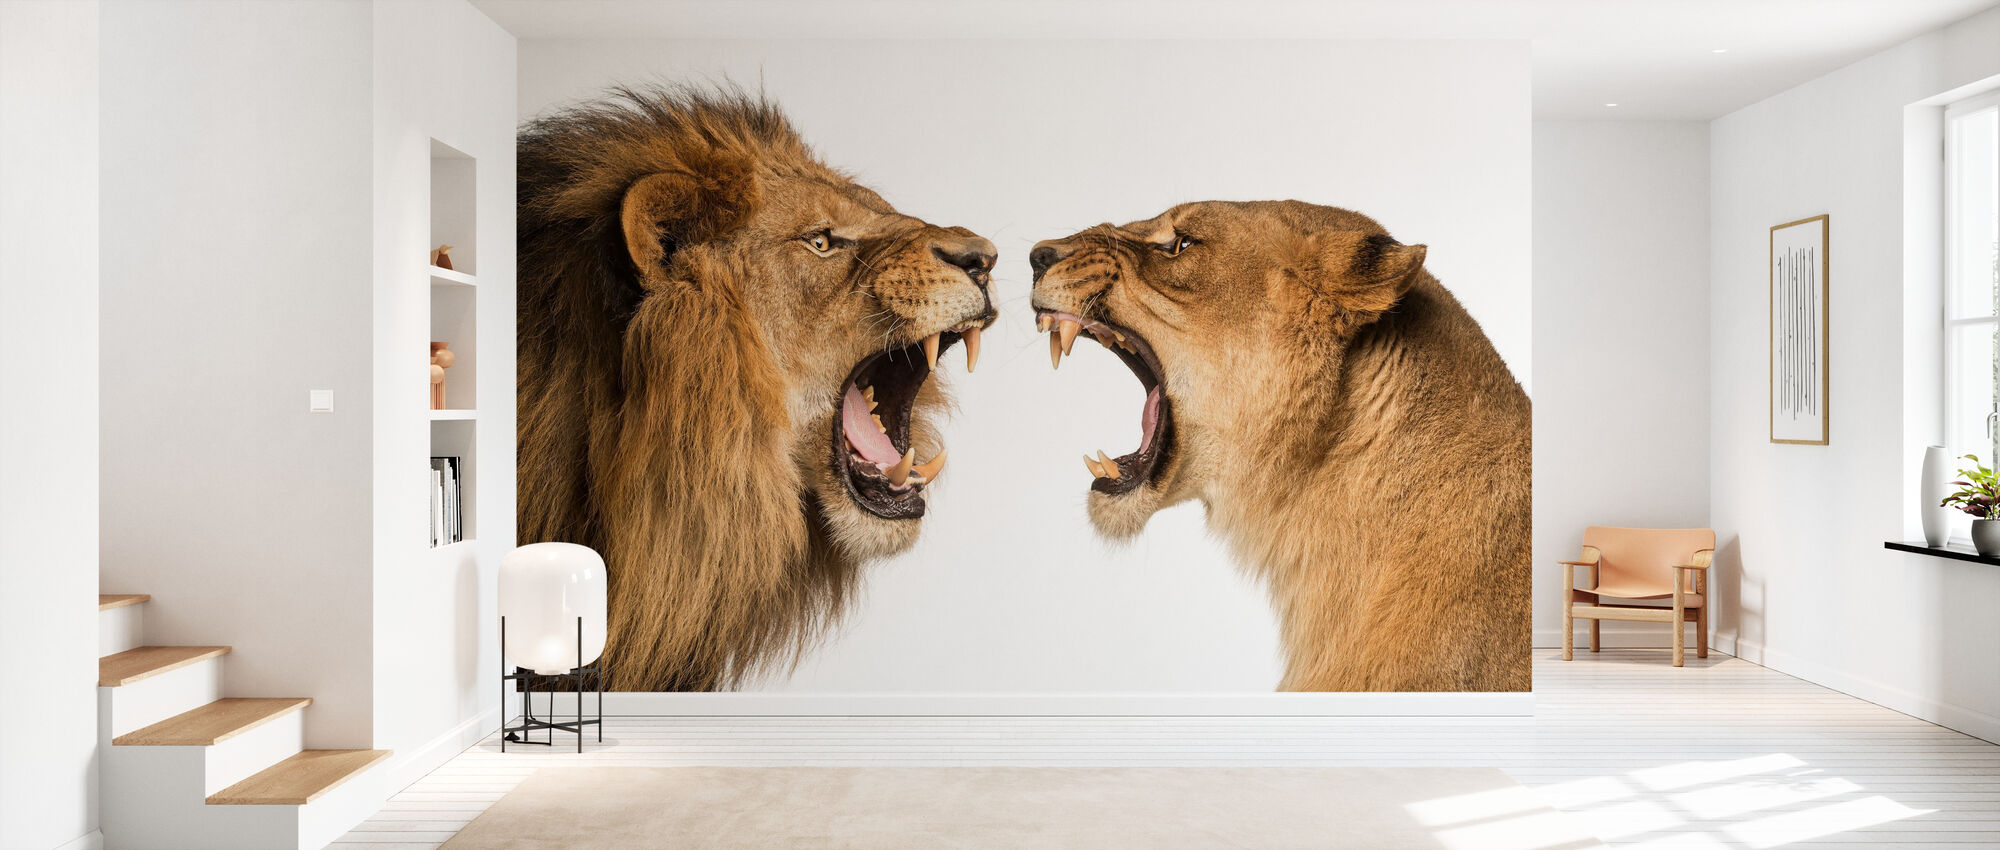 Roaring Lion and Lioness - Wallpaper - Hallway